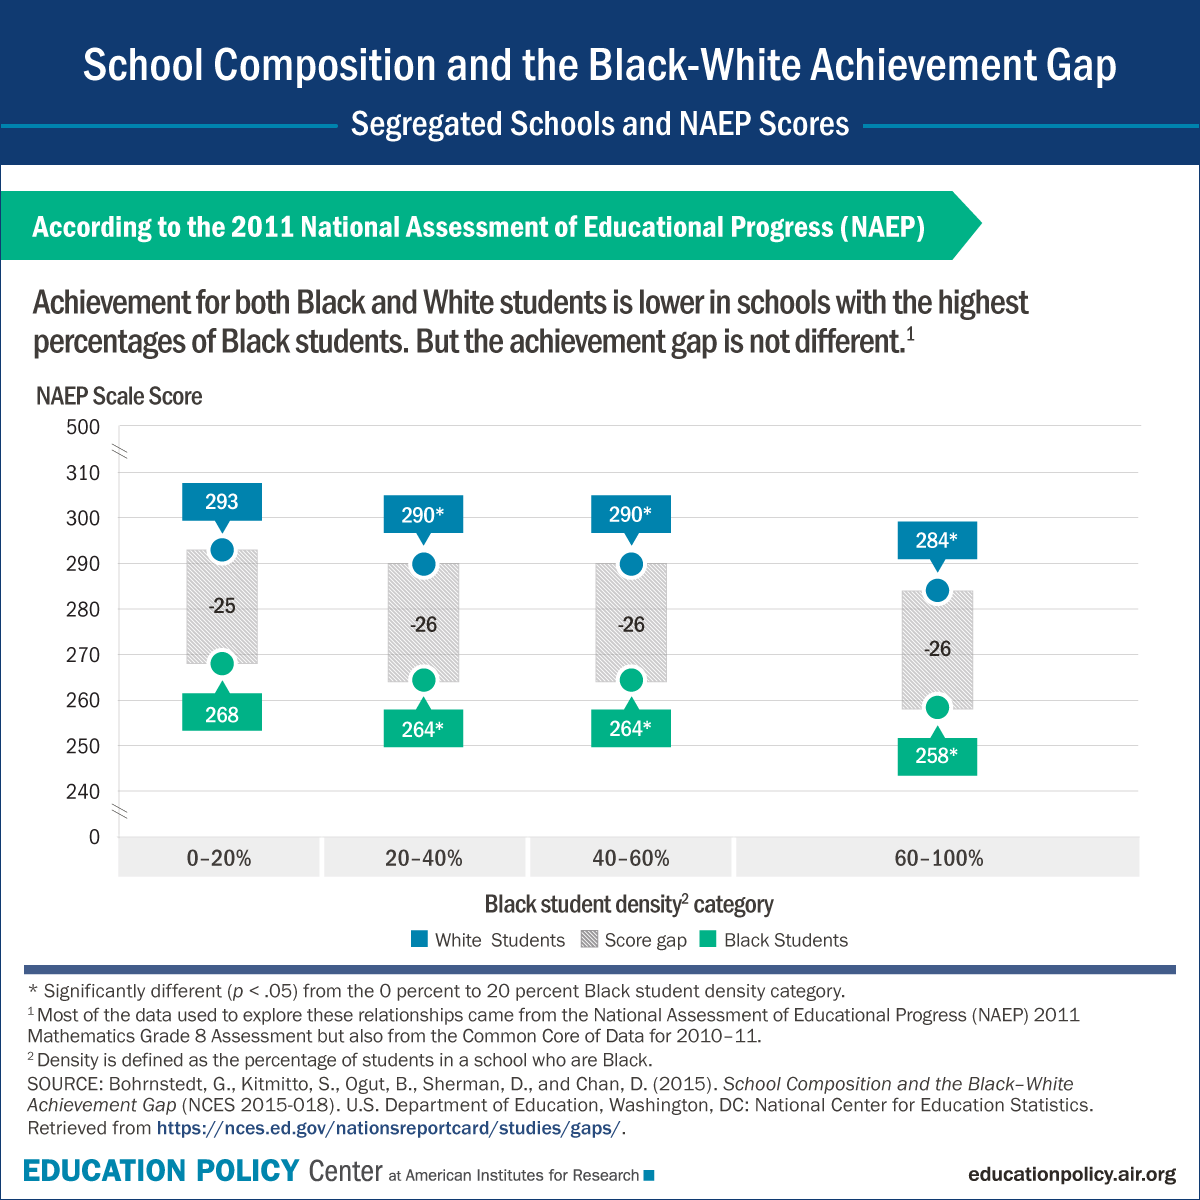 Infographic: What is the Black-White achievement gap and does it change based on the composition of the student body?